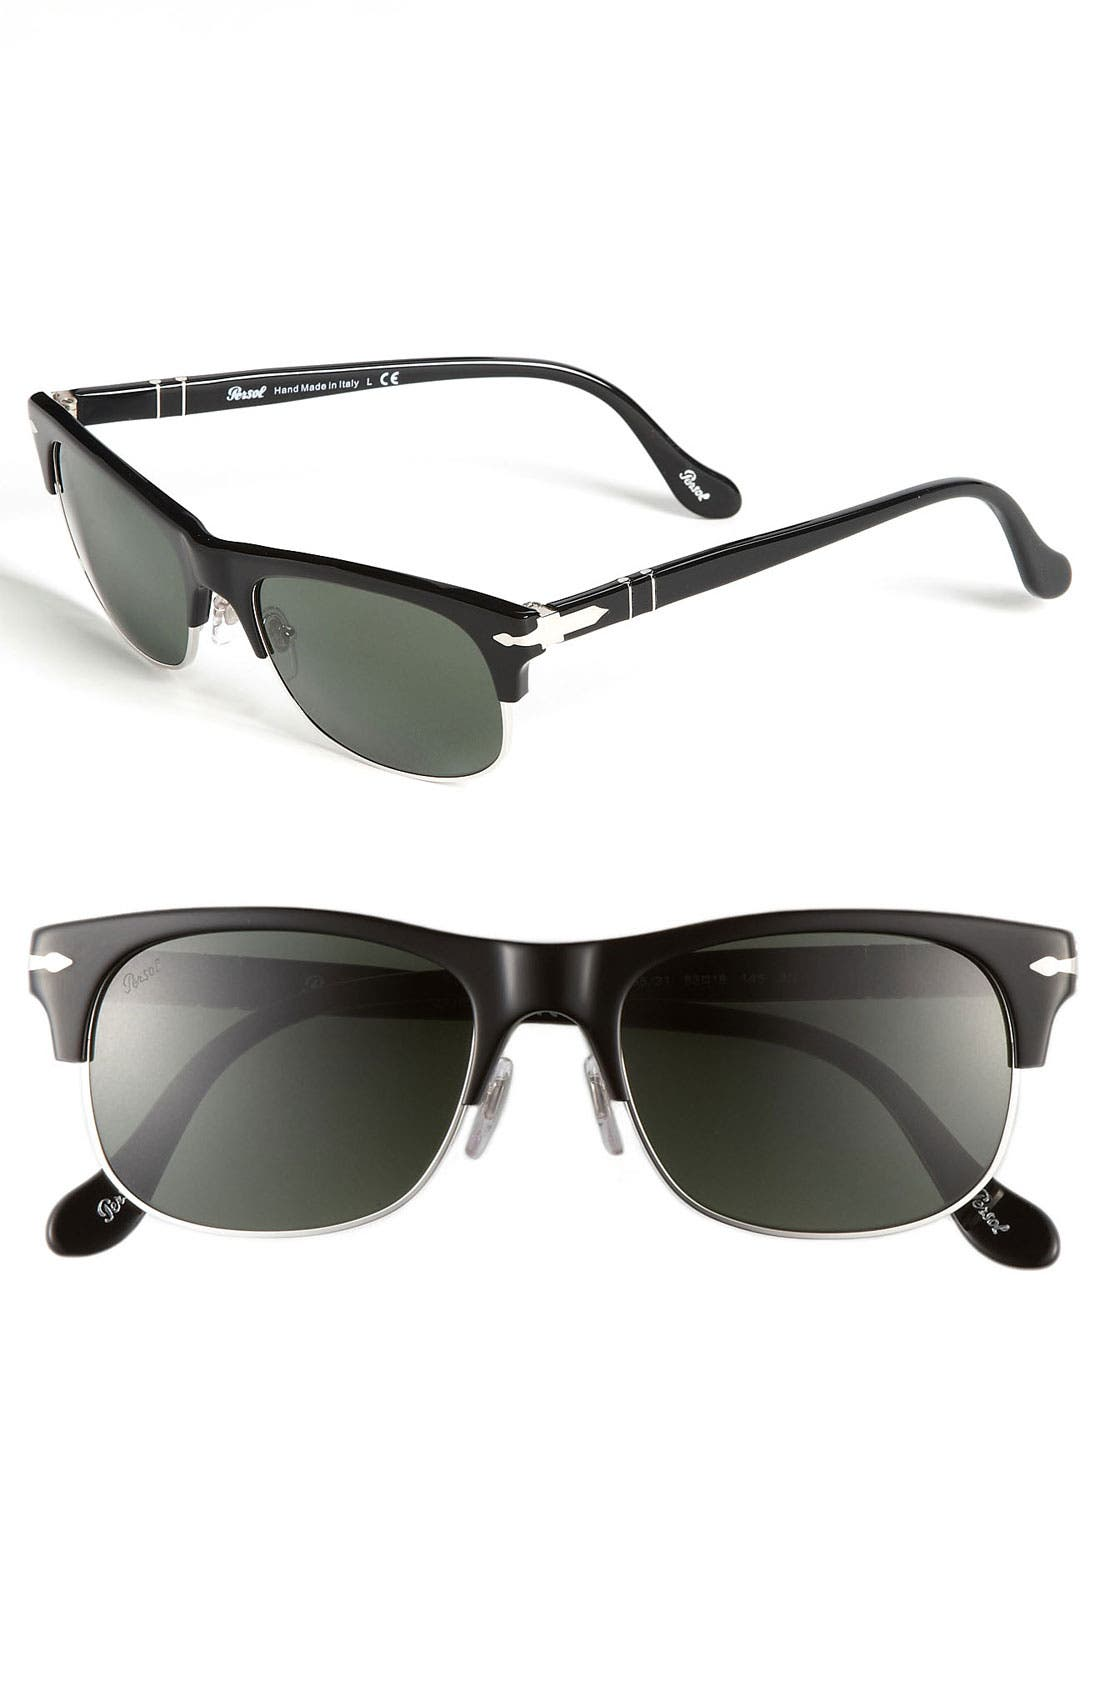 Main Image - Persol 'Cello Clubmaster' 56mm Sunglasses